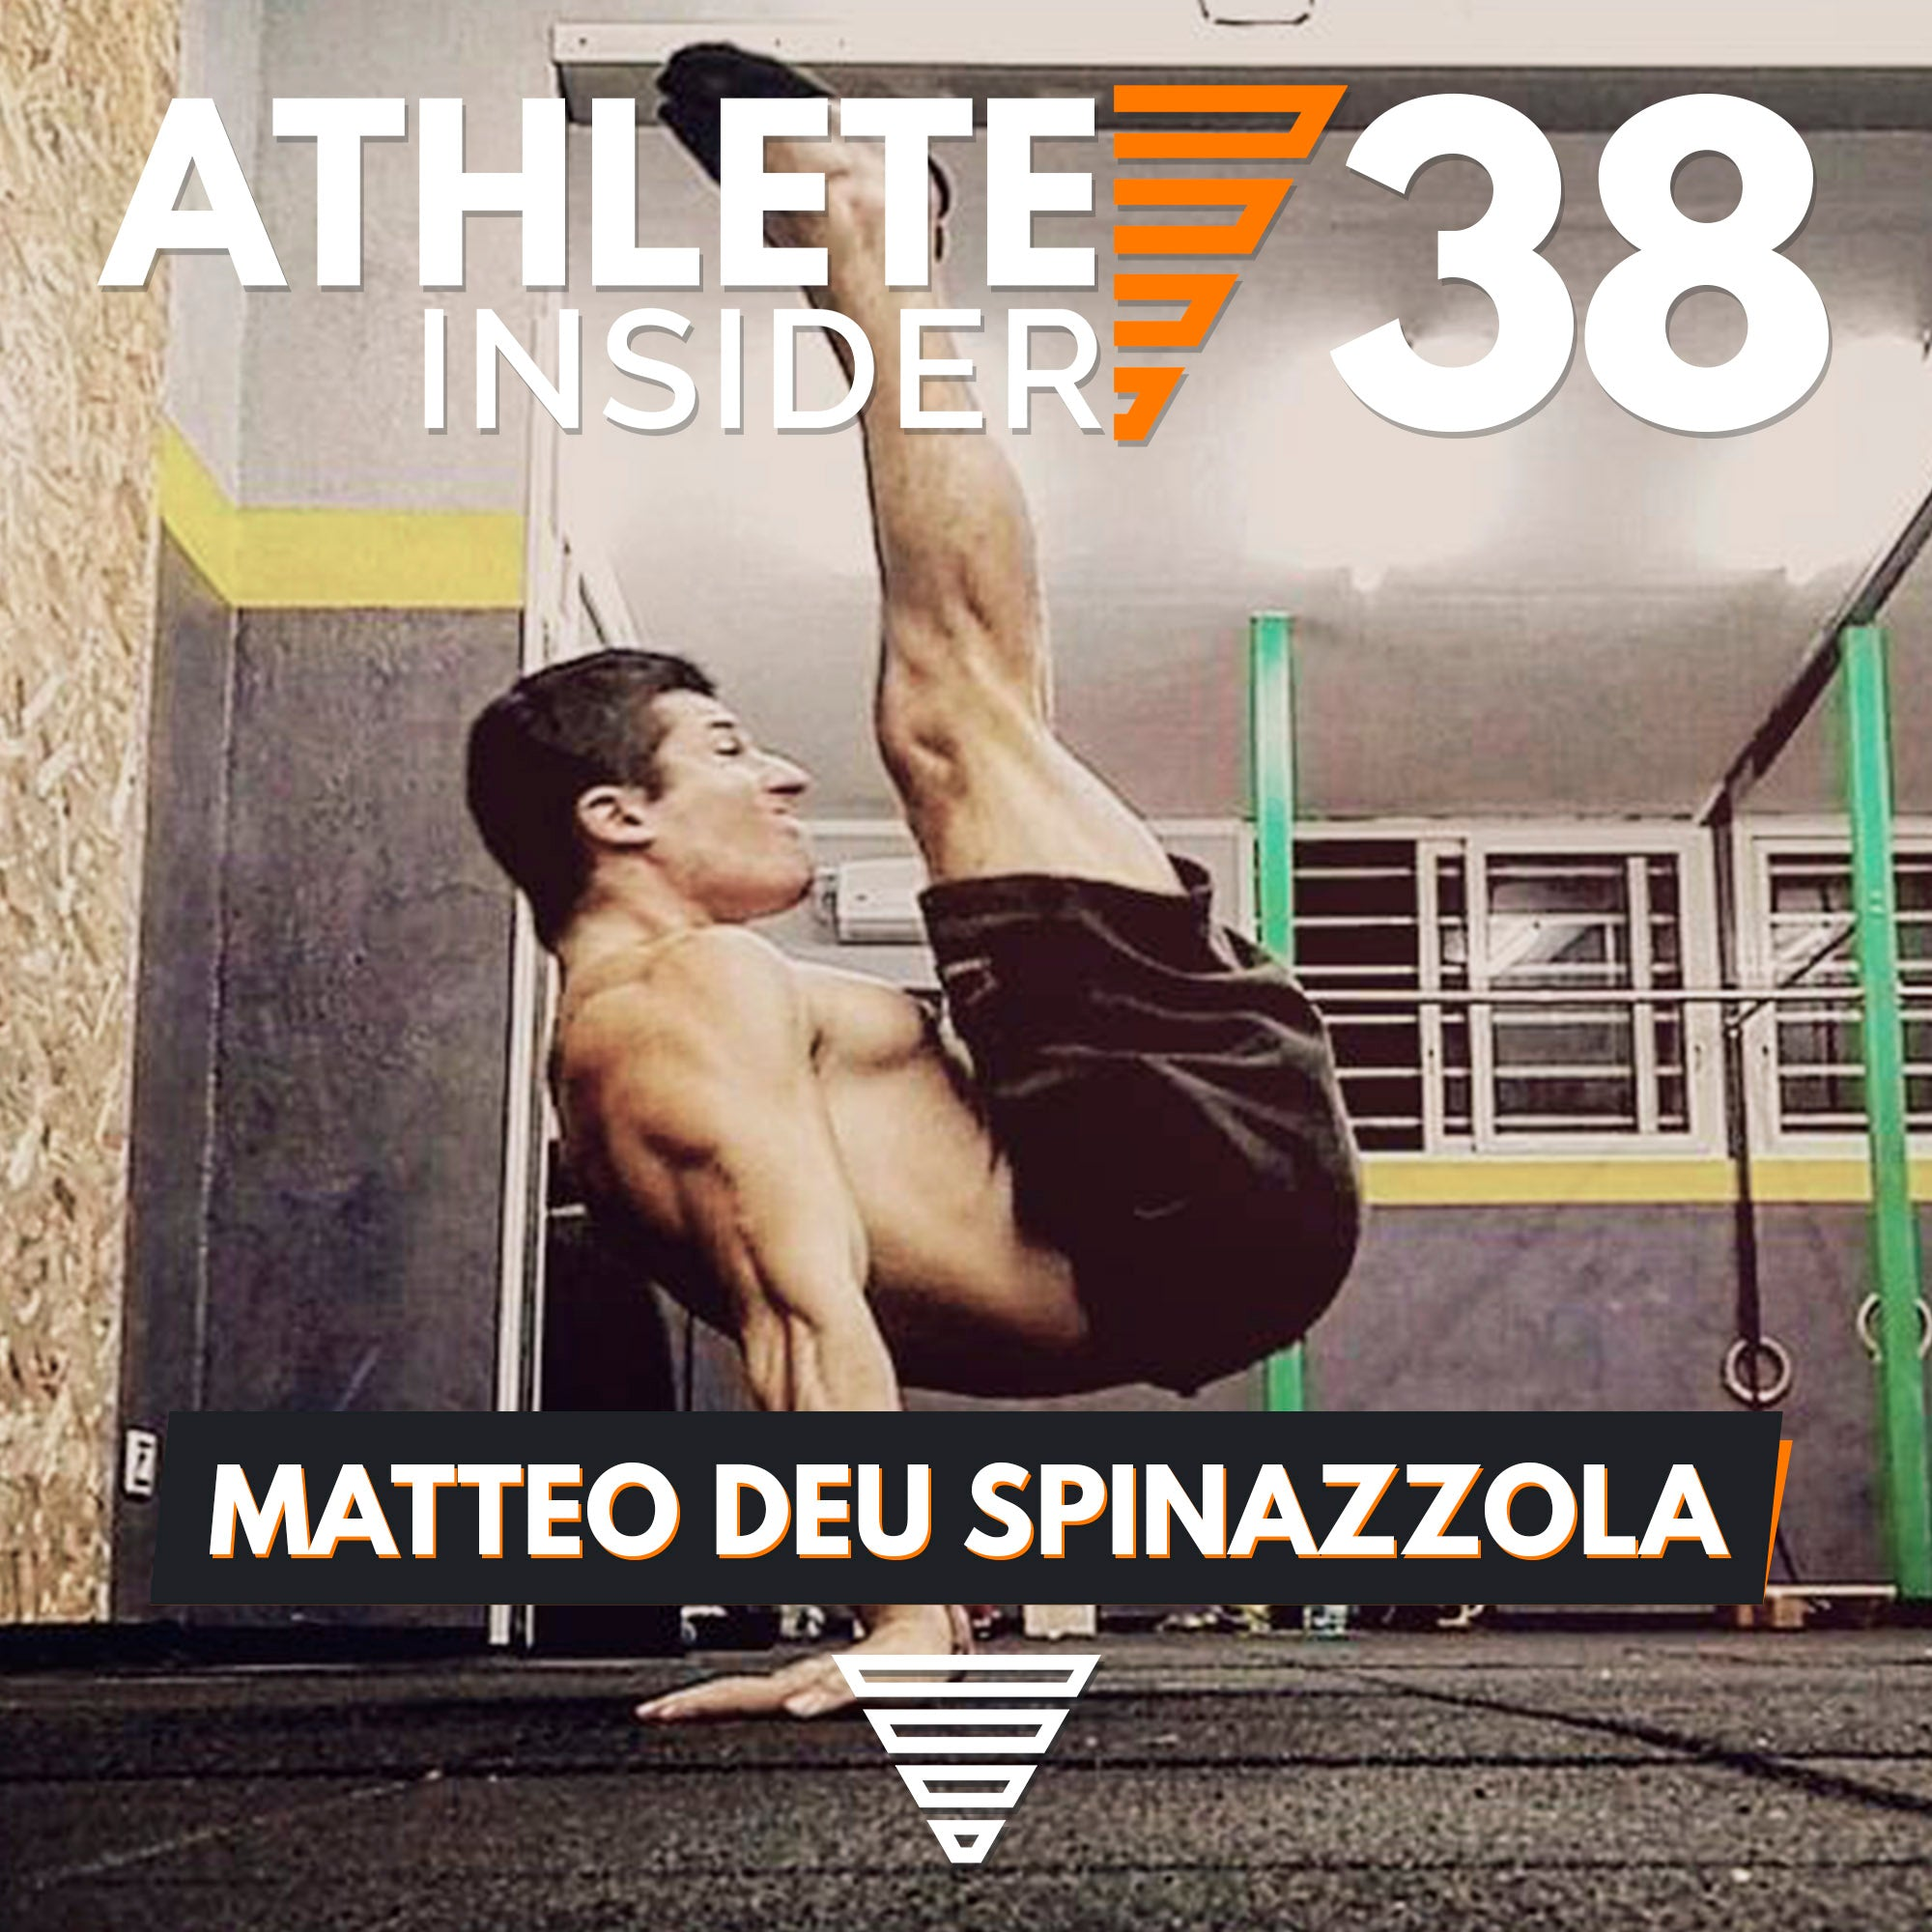 MATTEO DEU SPINAZZOLA | His Special Training Methods | Interview | The Athlete Insider Podcast #038